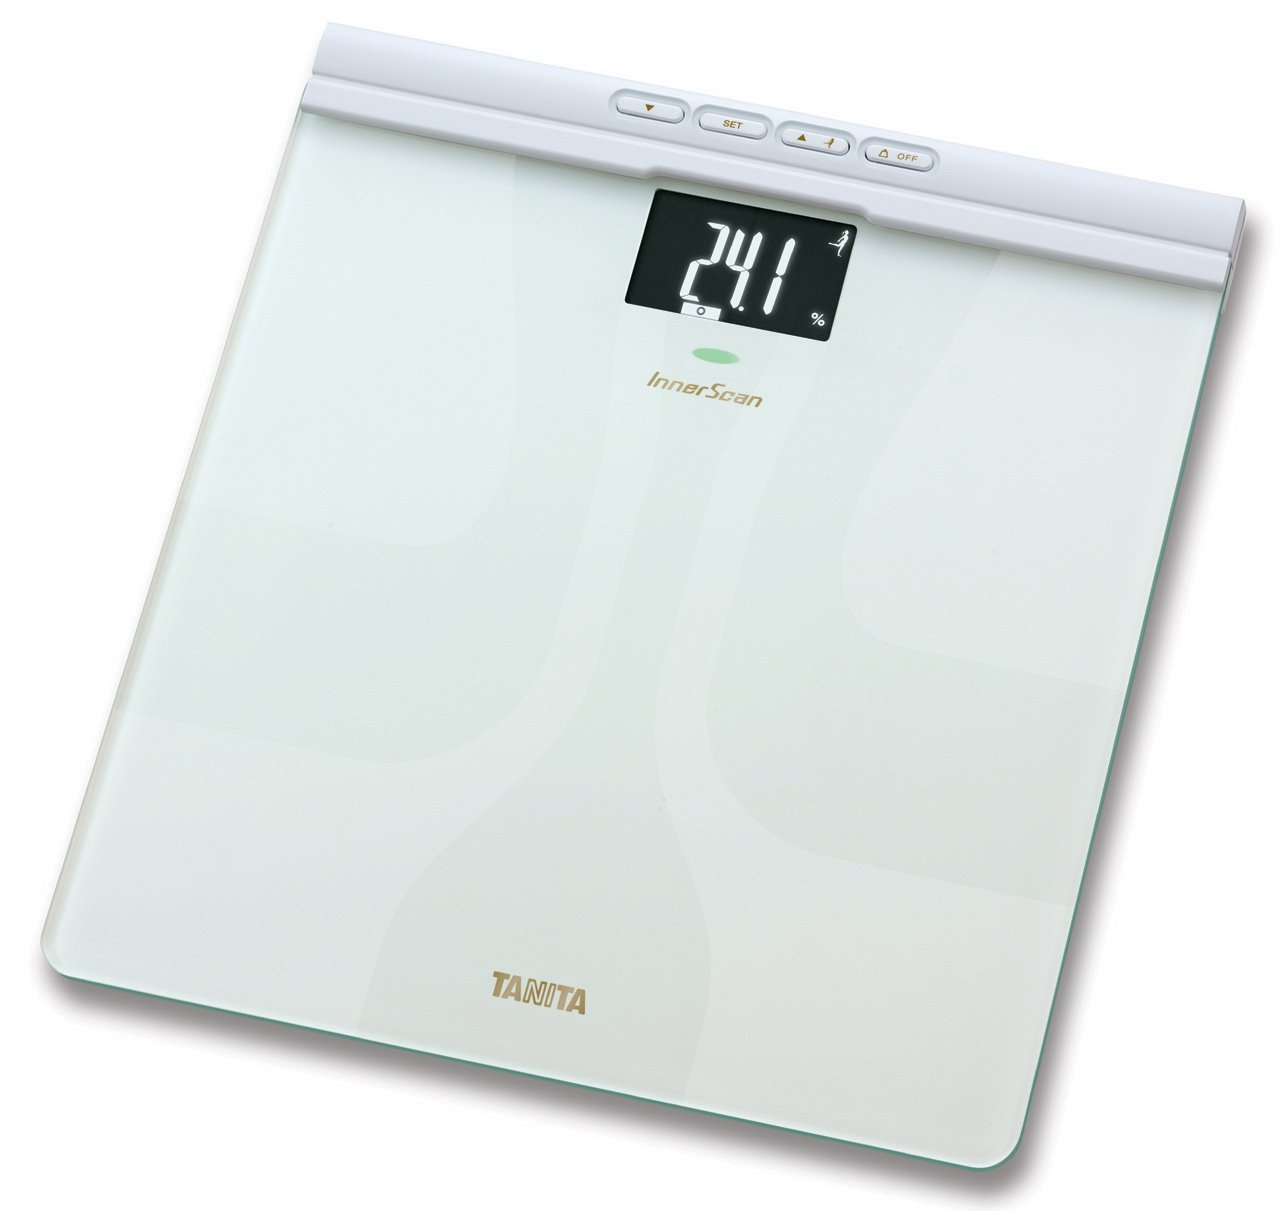 Tanita BC582 Electronic Glass Body Composition Monitor